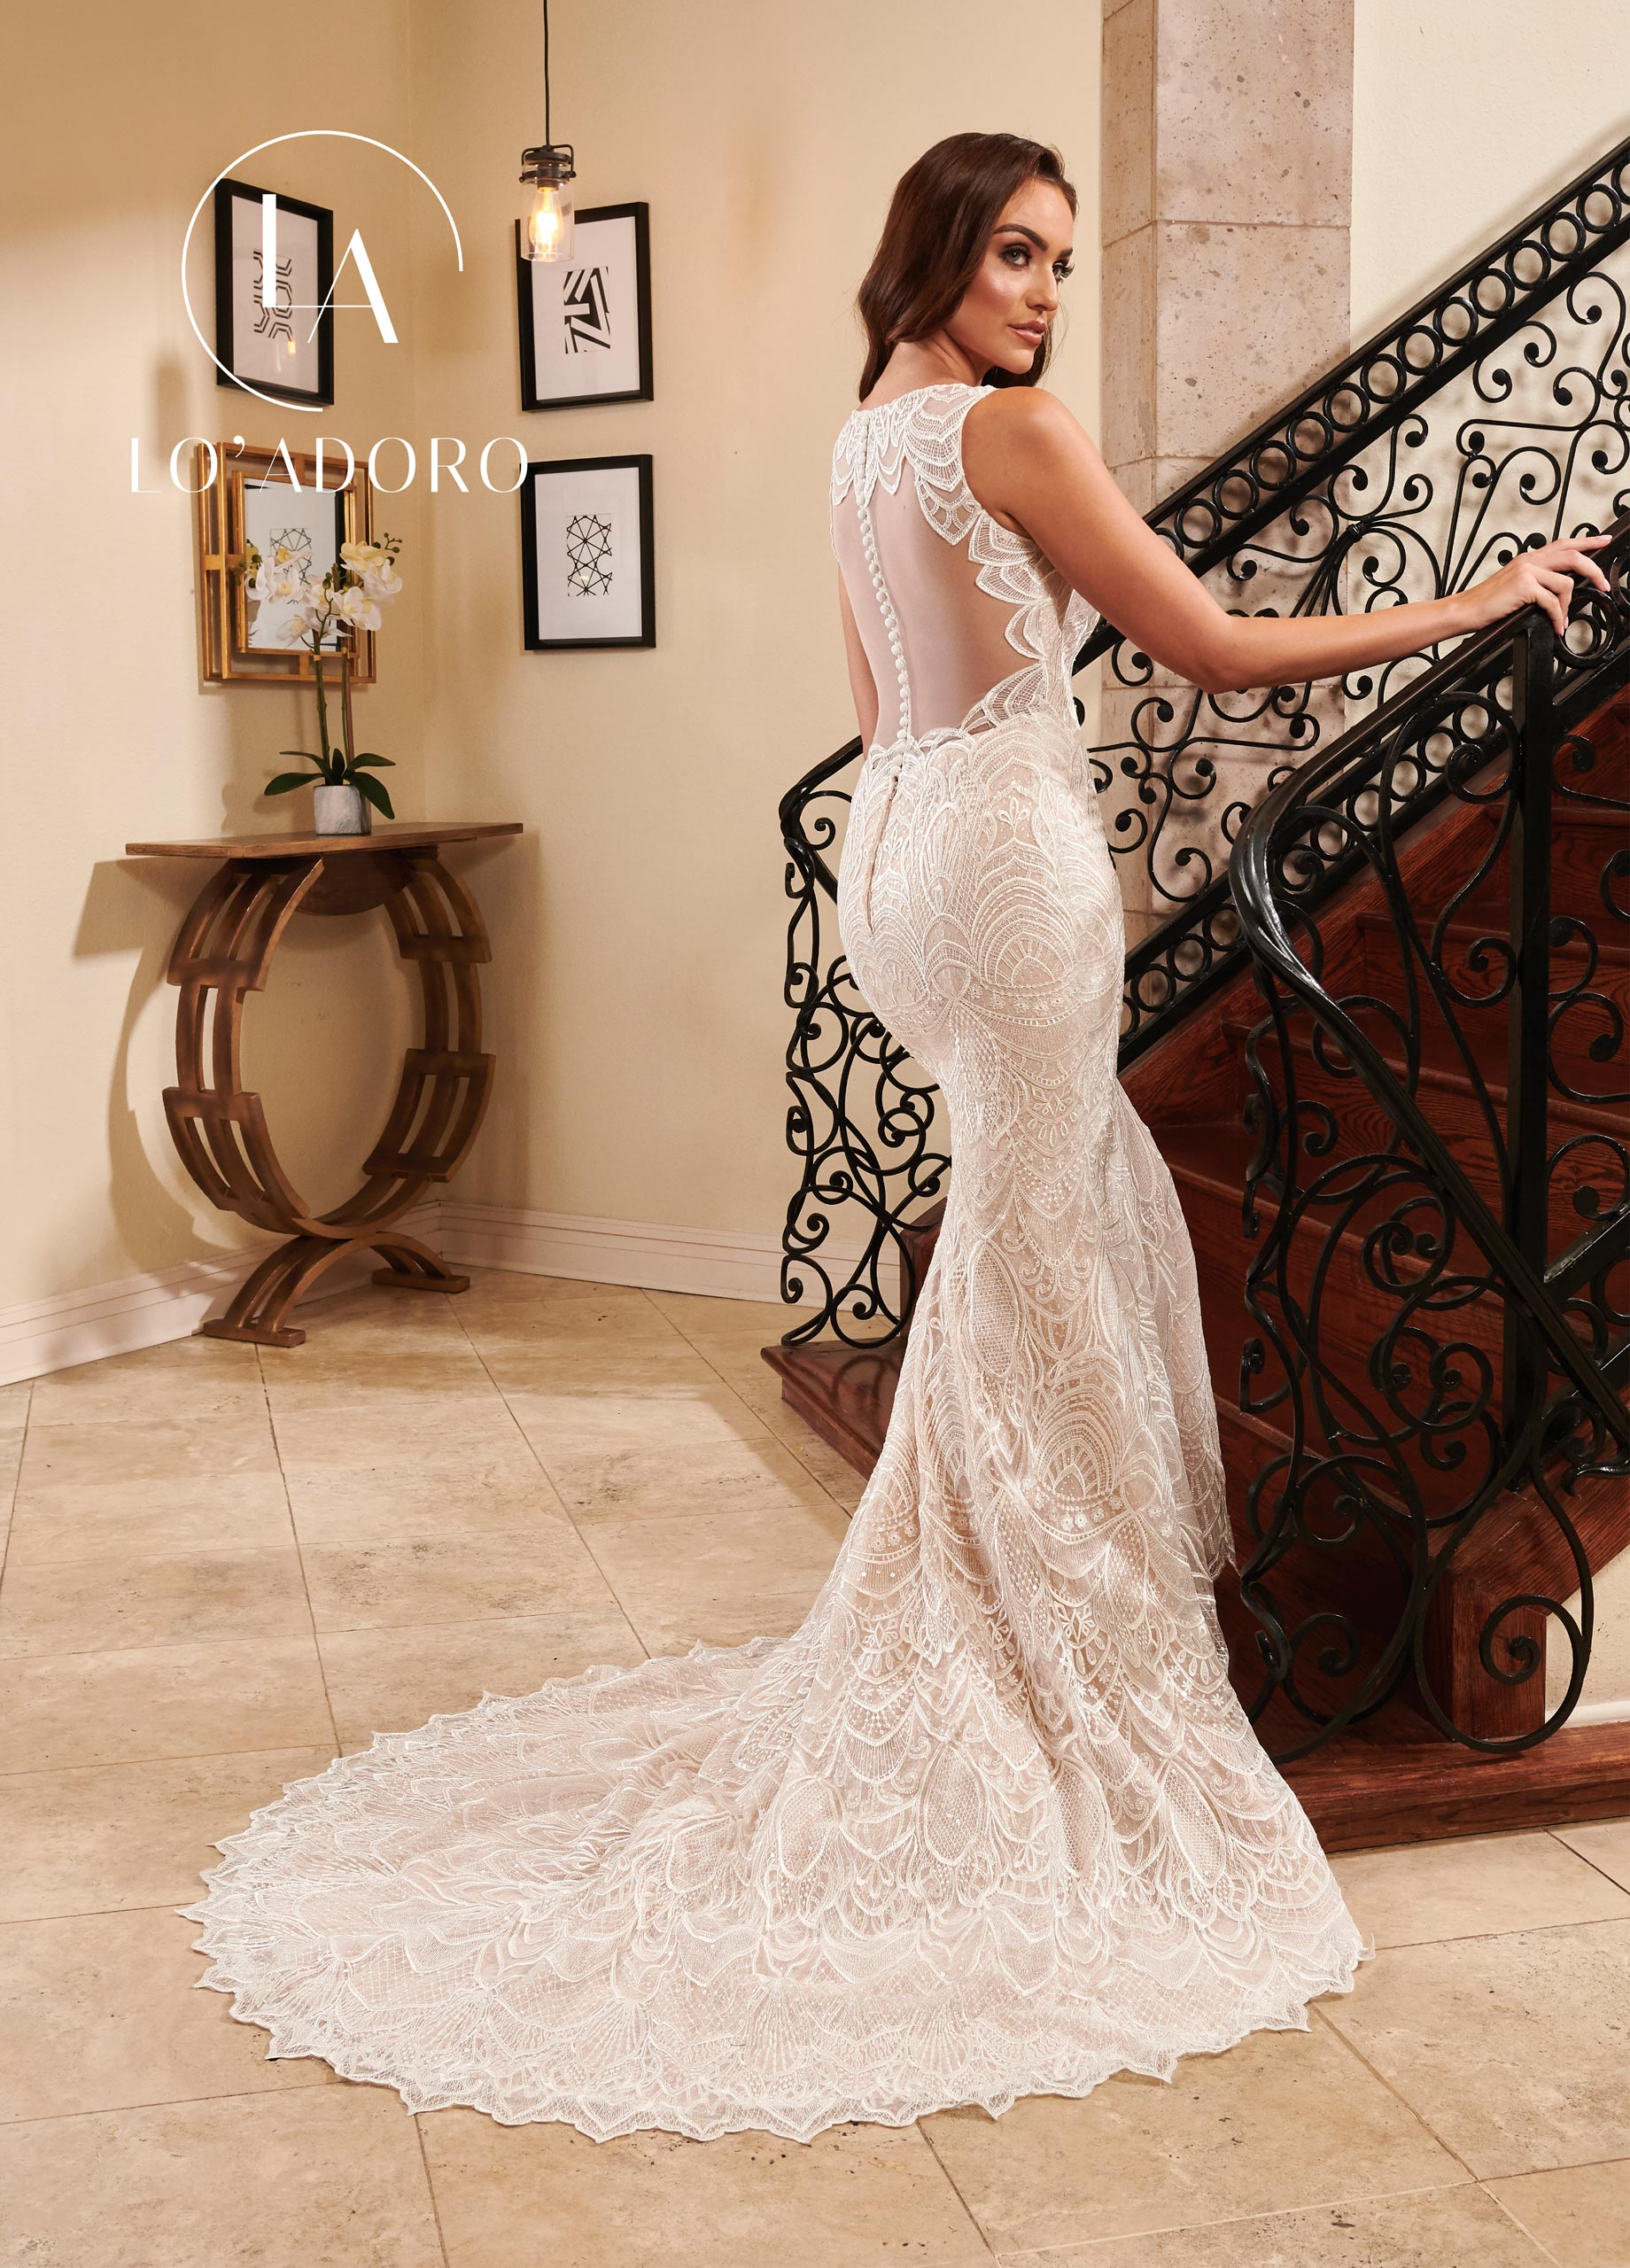 High Neckline Mermaid Lo' Adoro Bridal in White Color